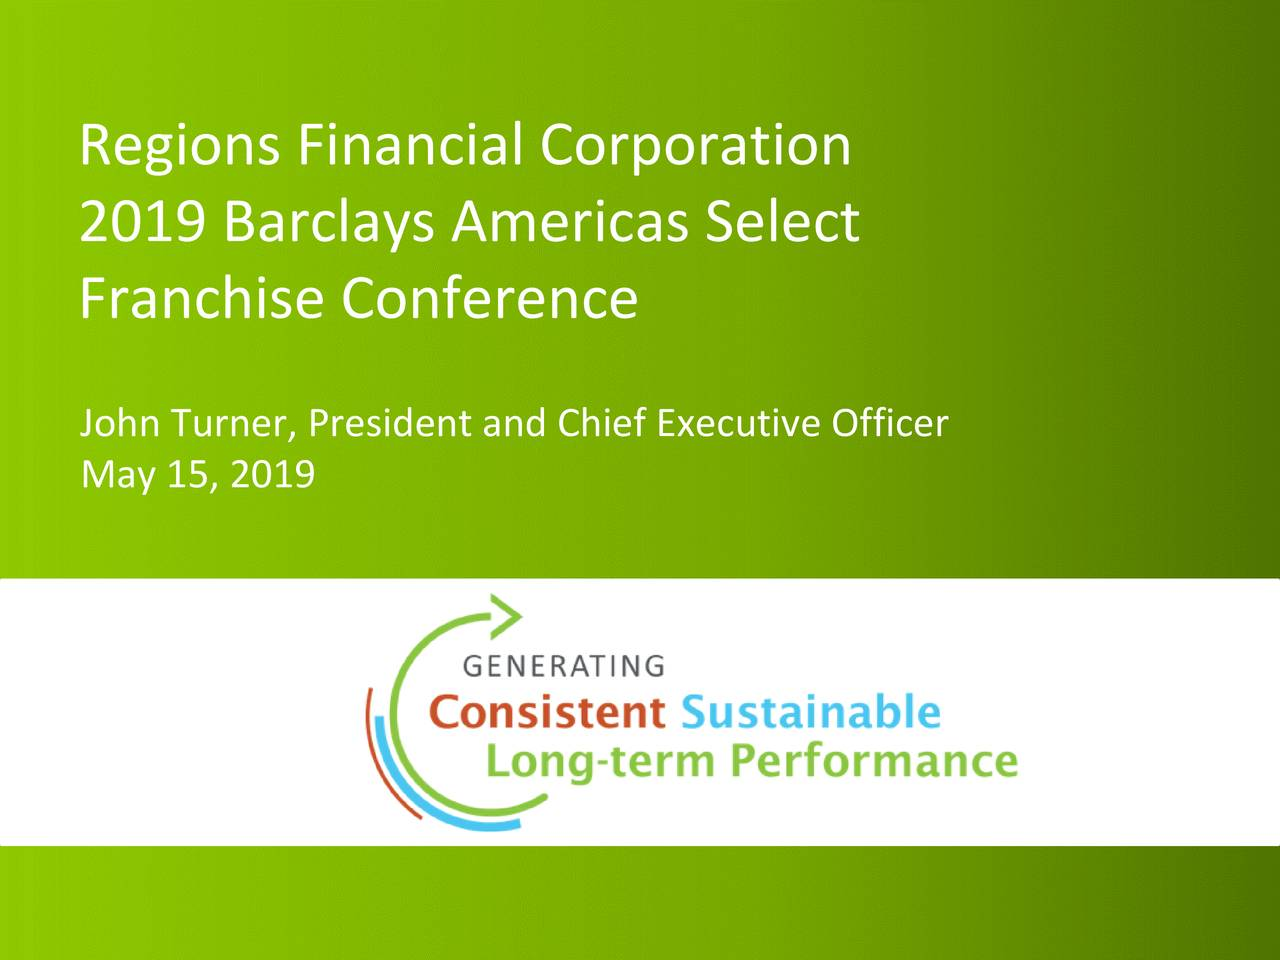 2019 Barclays Americas Select Franchise Conference John Turner, President and Chief Executive Officer May 15, 2019